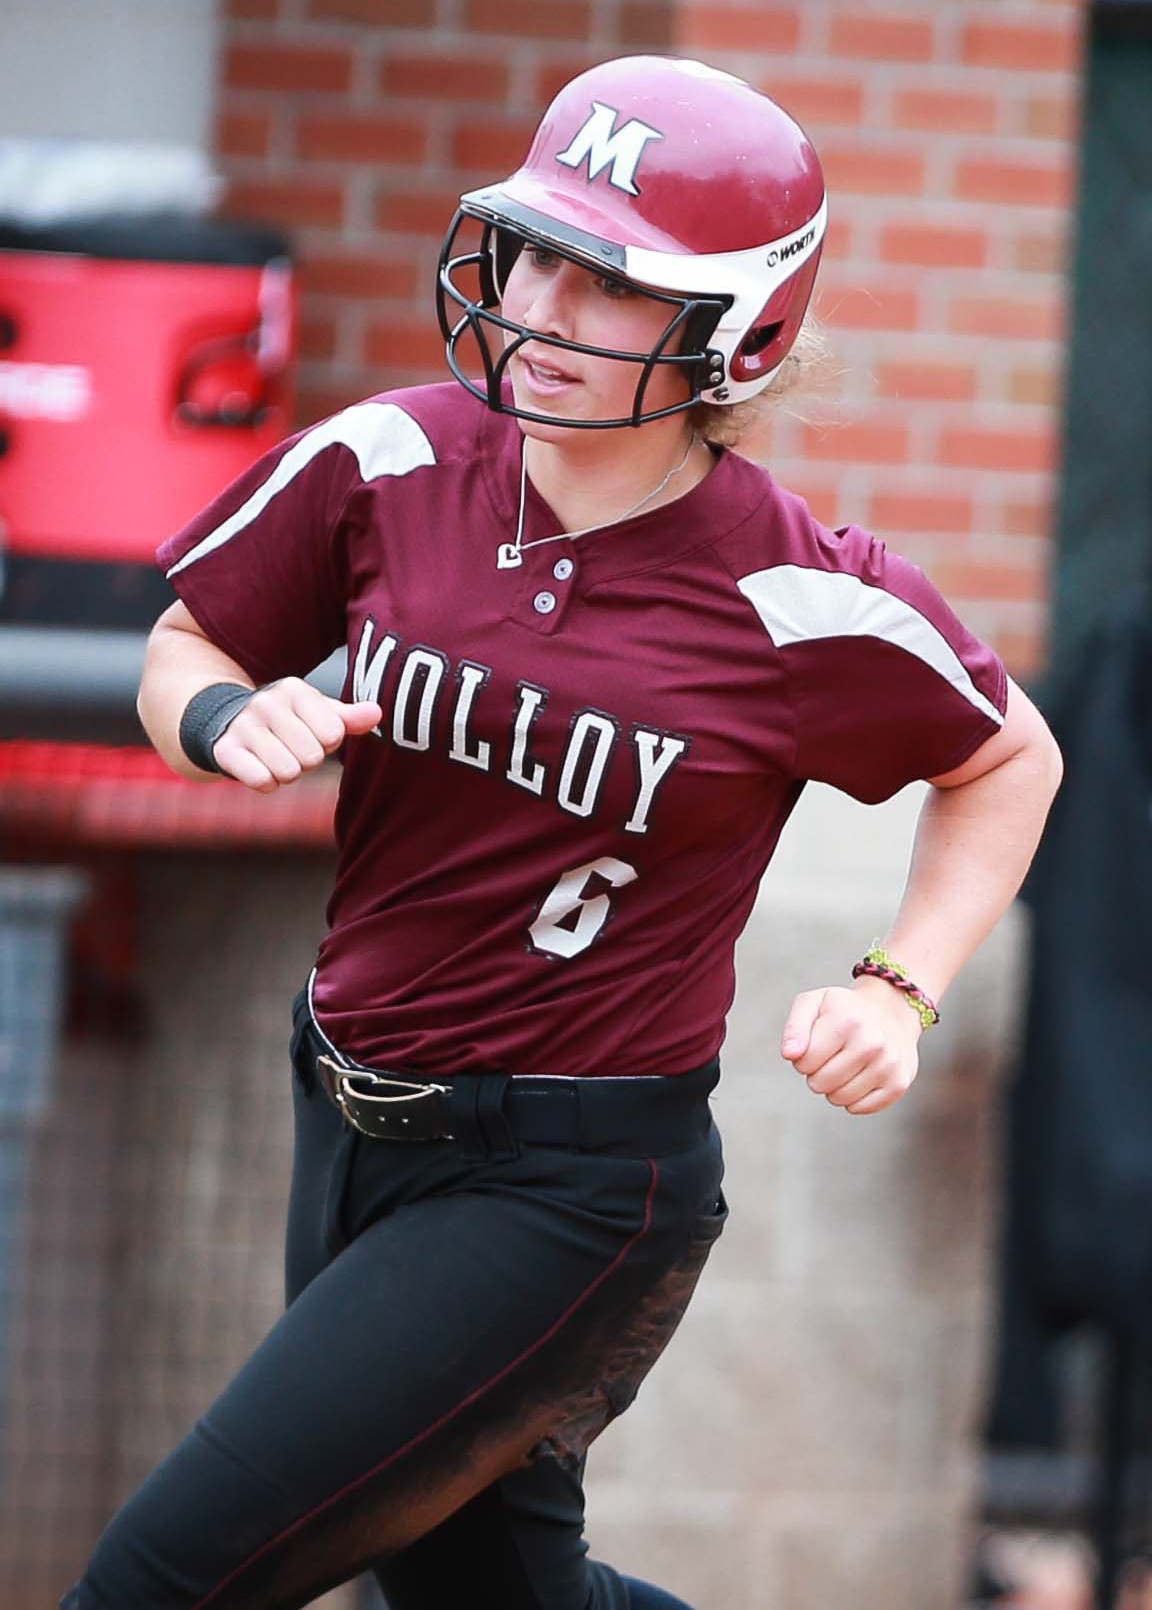 Senior Nicolette Sinagra led Molloy in most offensive categories a year ago and was selected as the East Coast Conference Co-Preseason Player of the Year for 2014.